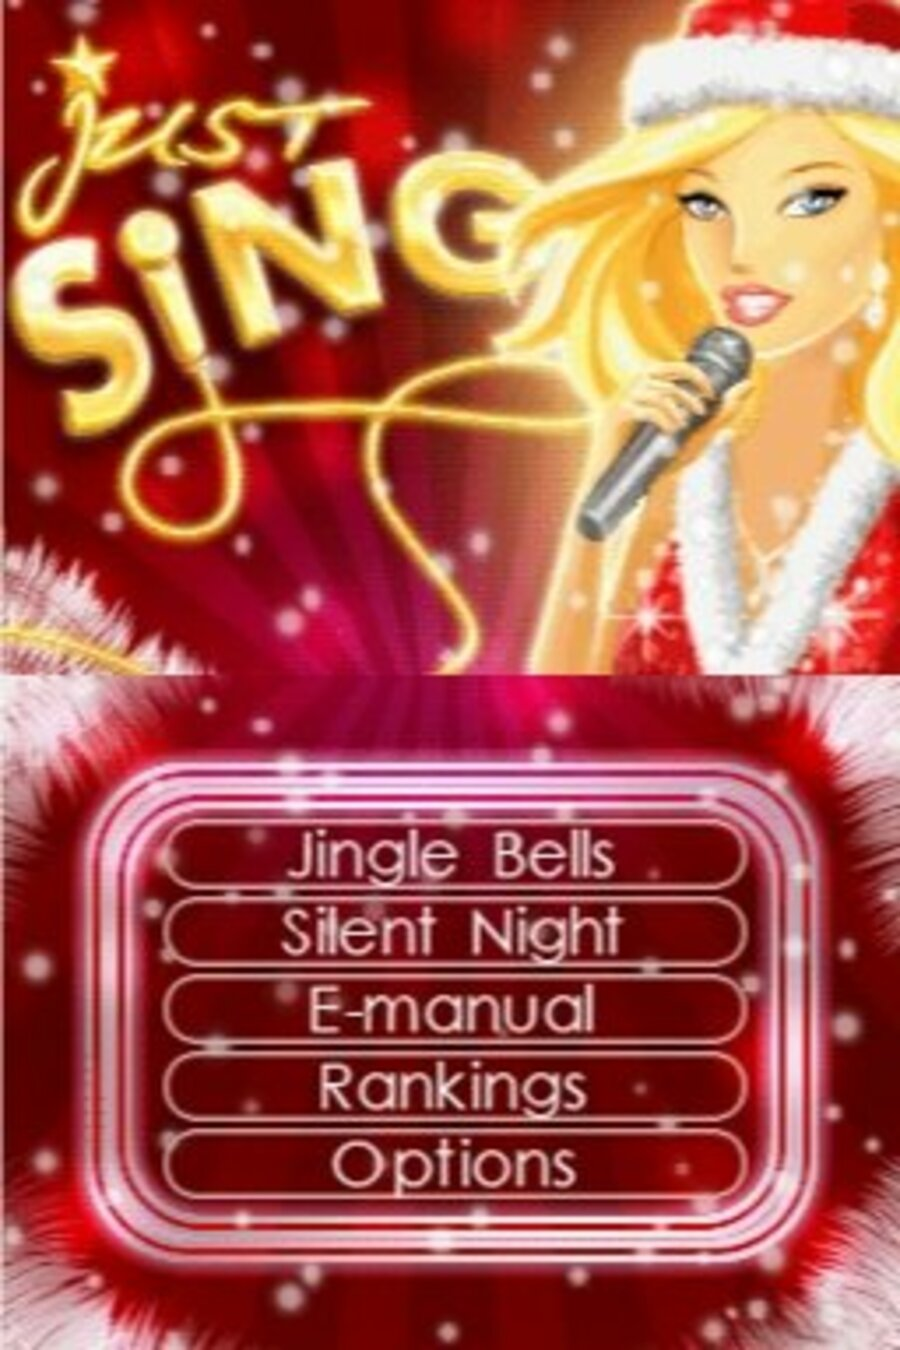 Just Sing! Christmas Songs Screenshot